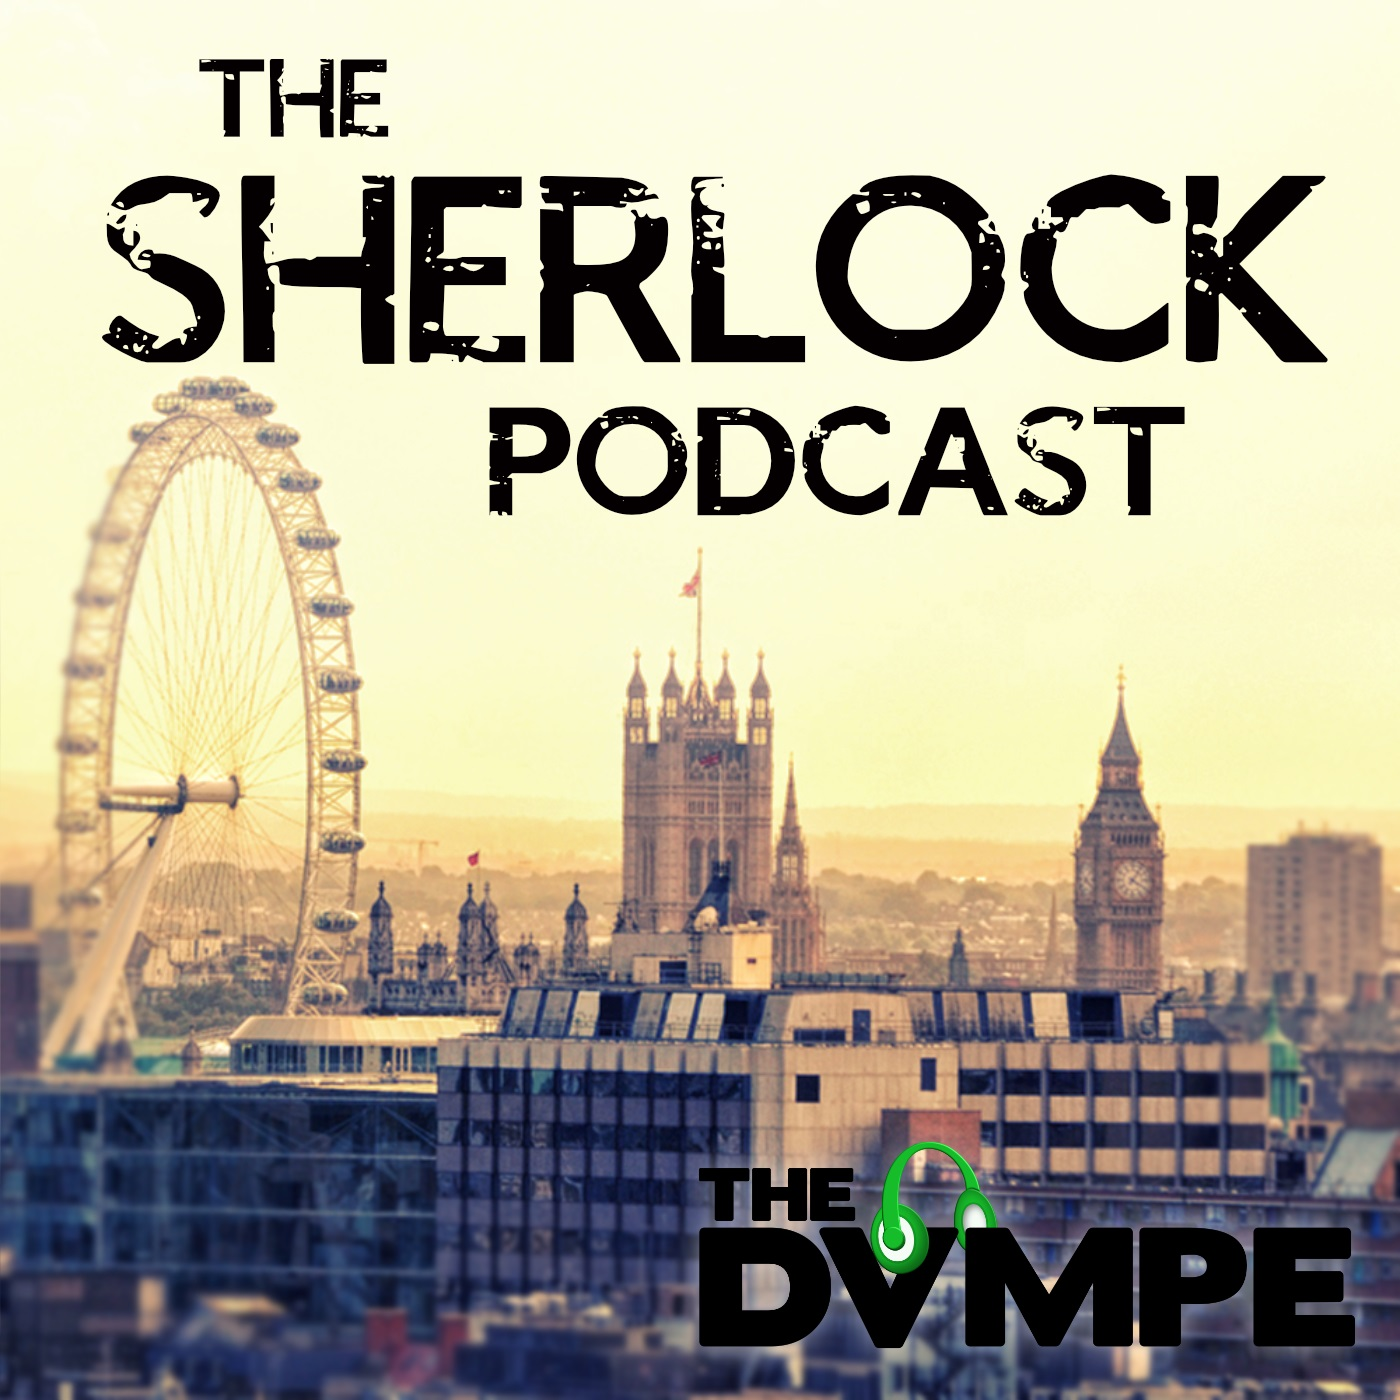 The SHERLOCK Podcast